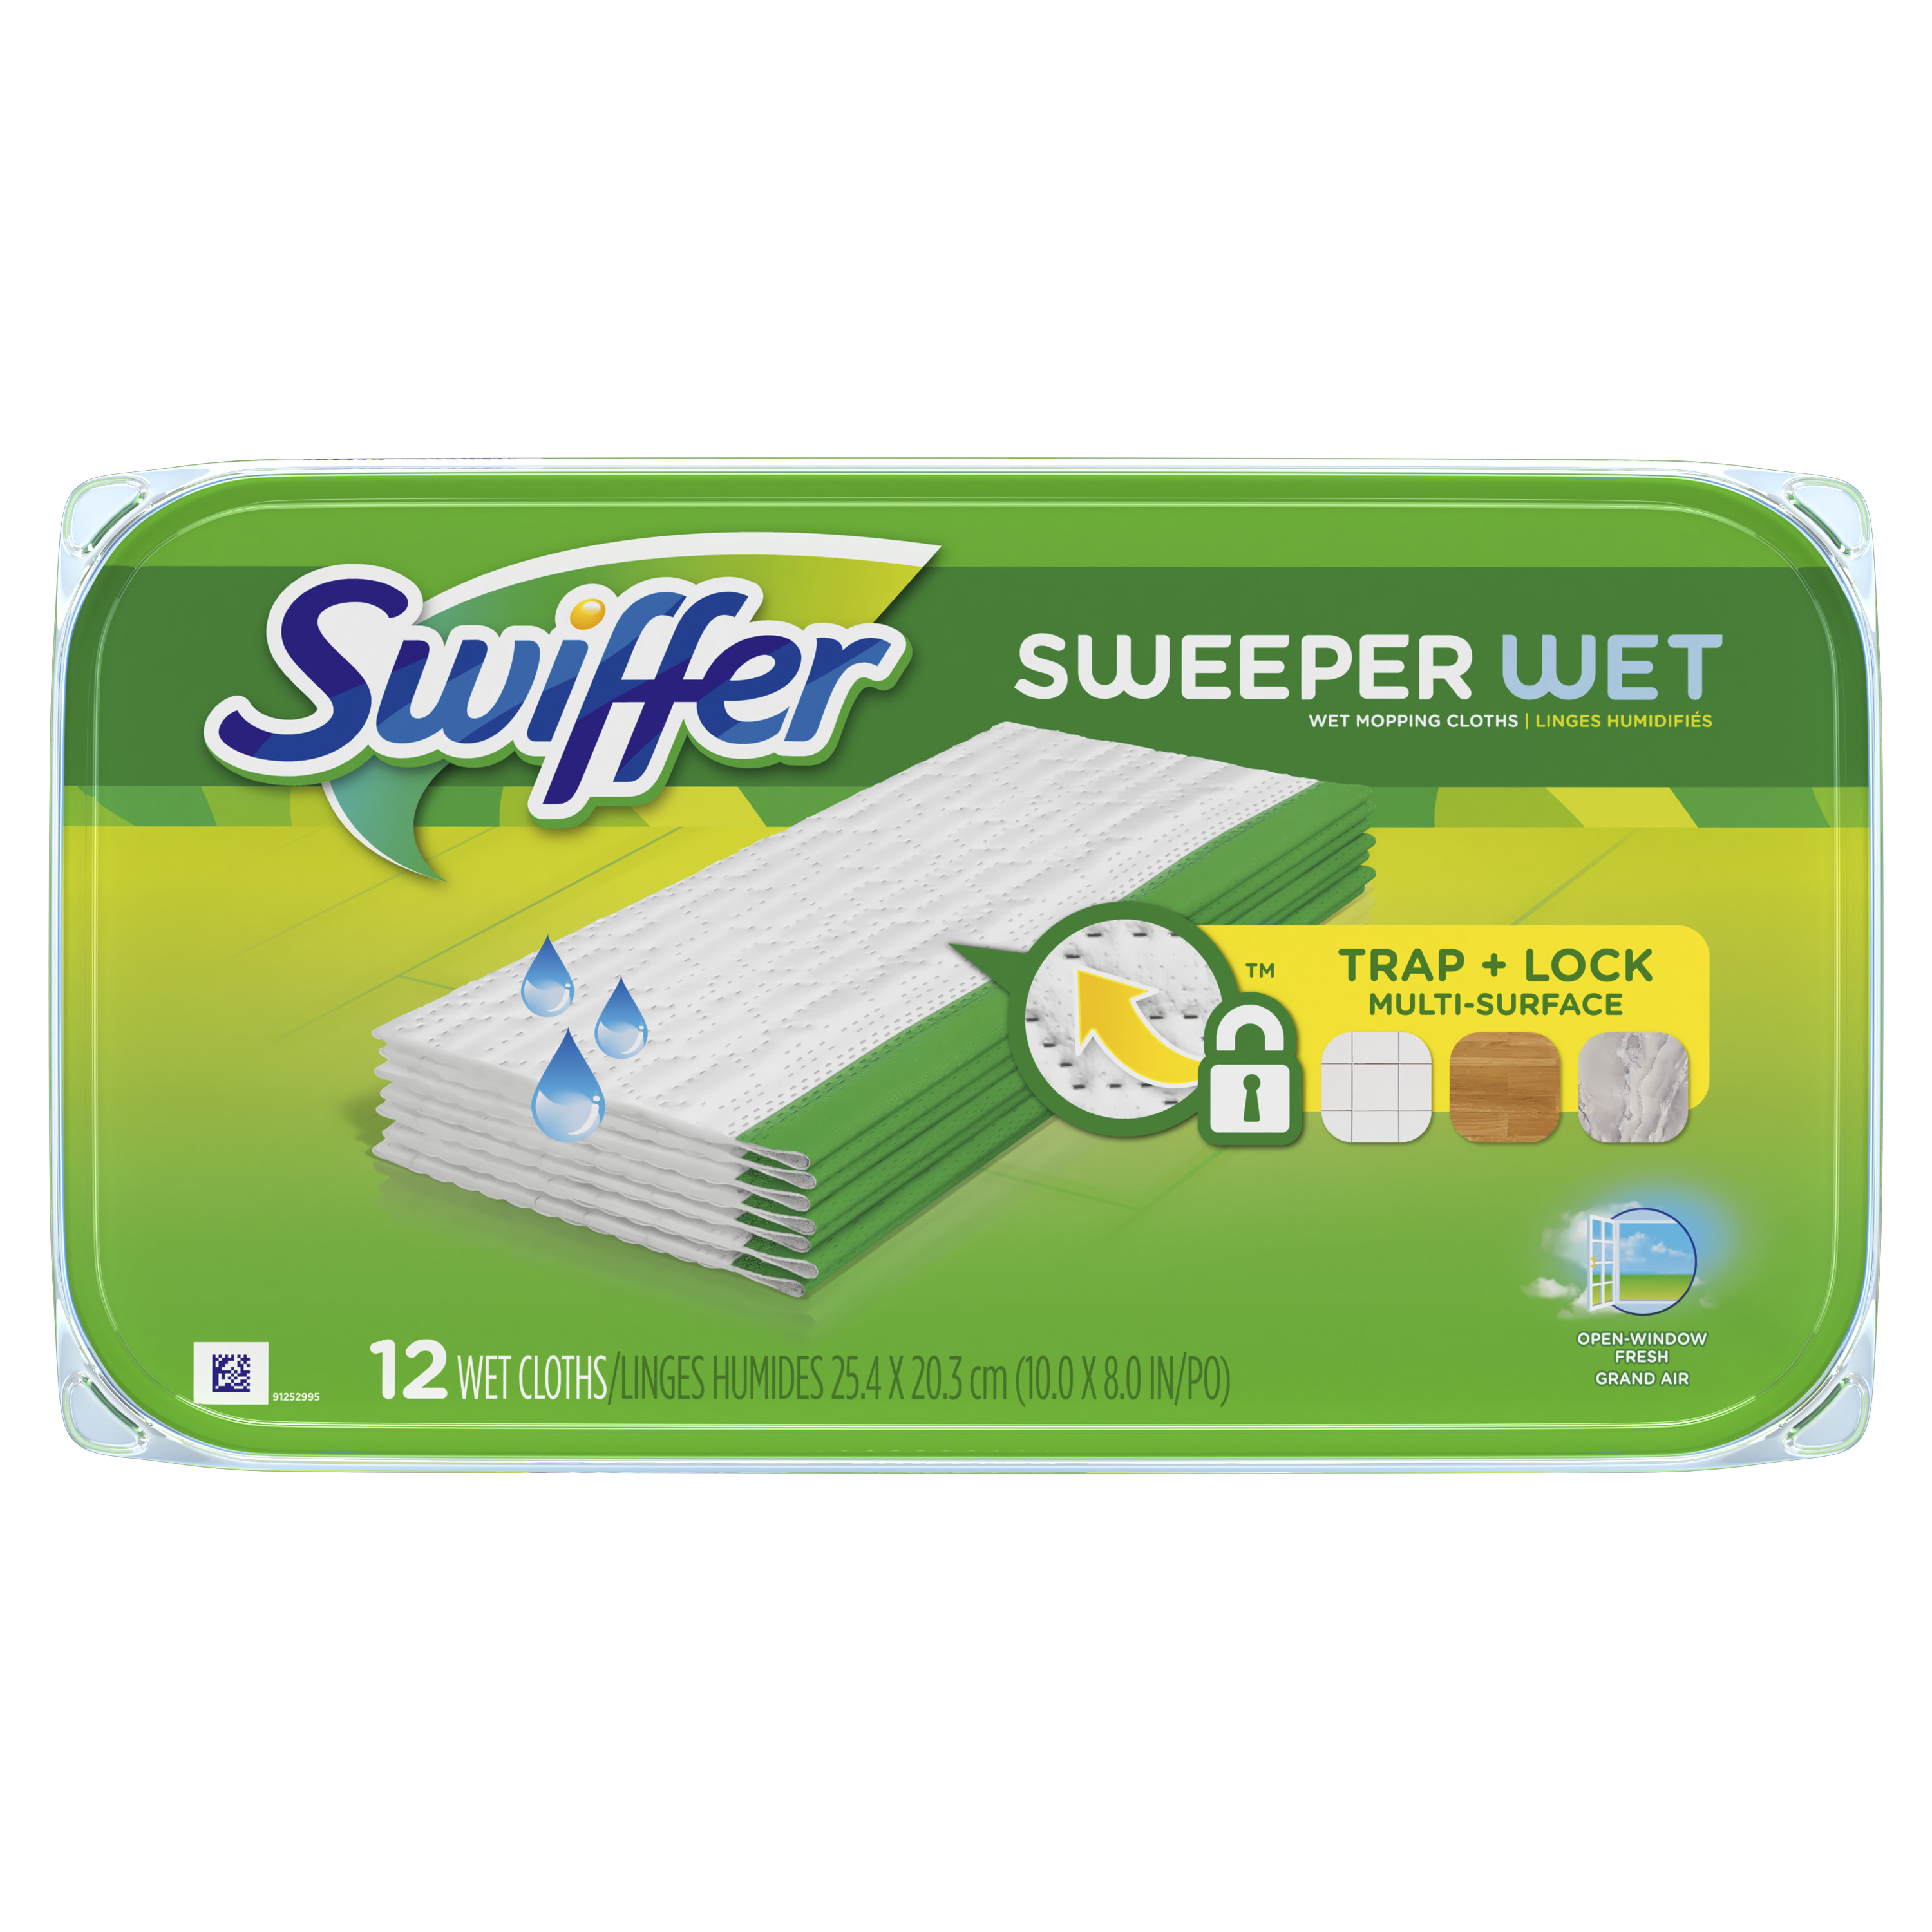 Swiffer Sweeper Wet Mopping Pad Multi Surface Refills for floor mop, Open Window Fresh scent, 12 Count